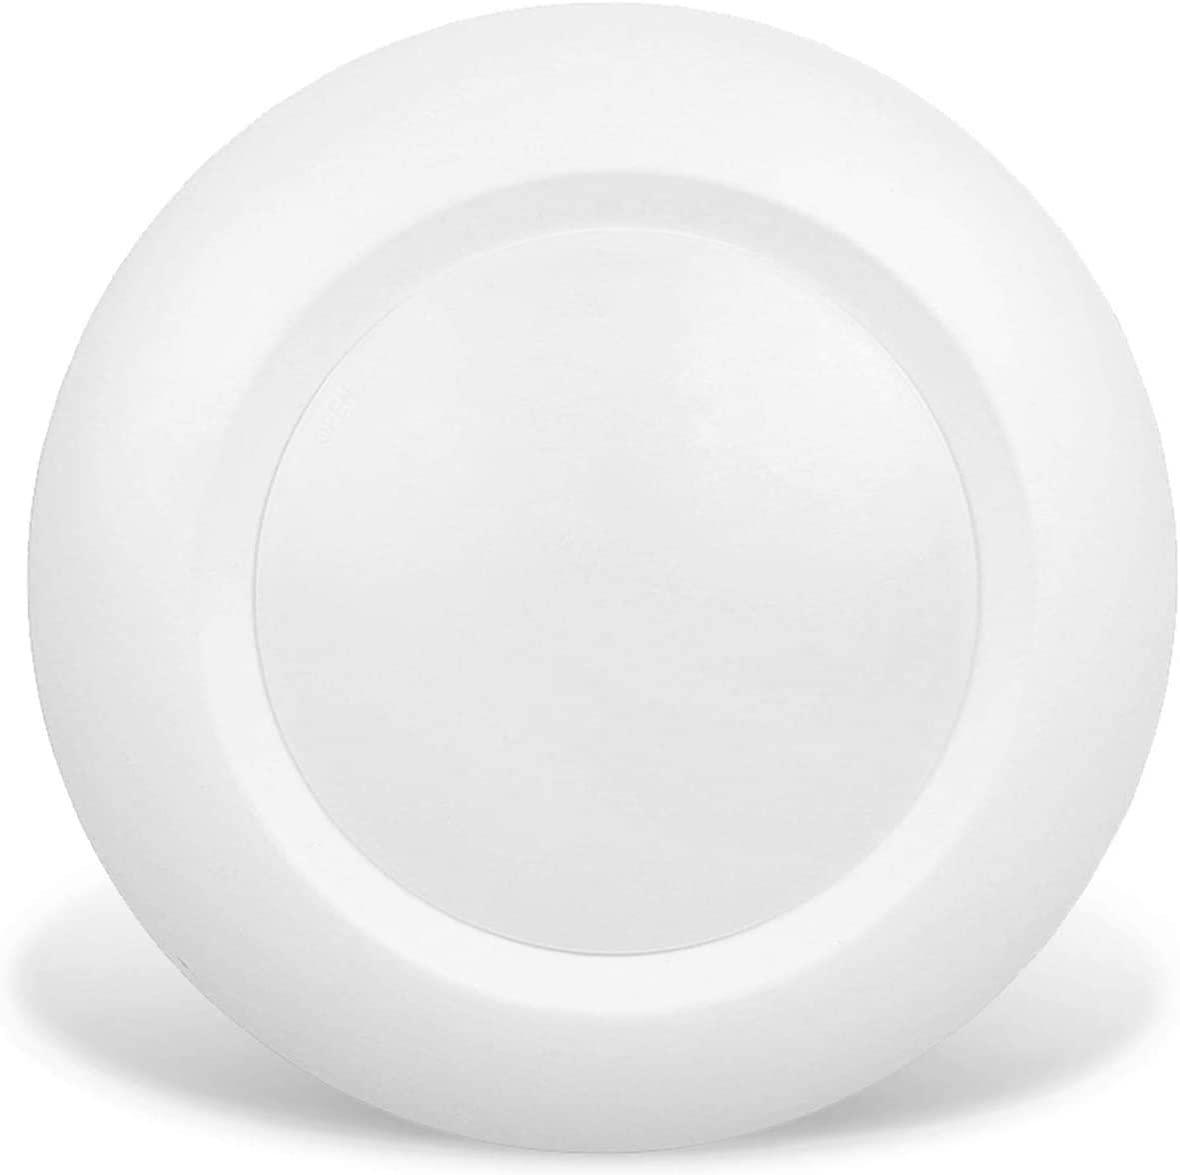 JULLISON 6 Inch LED Low Profile Recessed & Surface Mount Disk Light, Round, 15W, 900 Lumens, 4000K Cool White, CRI80, Driverless Design, Dimmable, cETLus Listed, White(1 Pack)